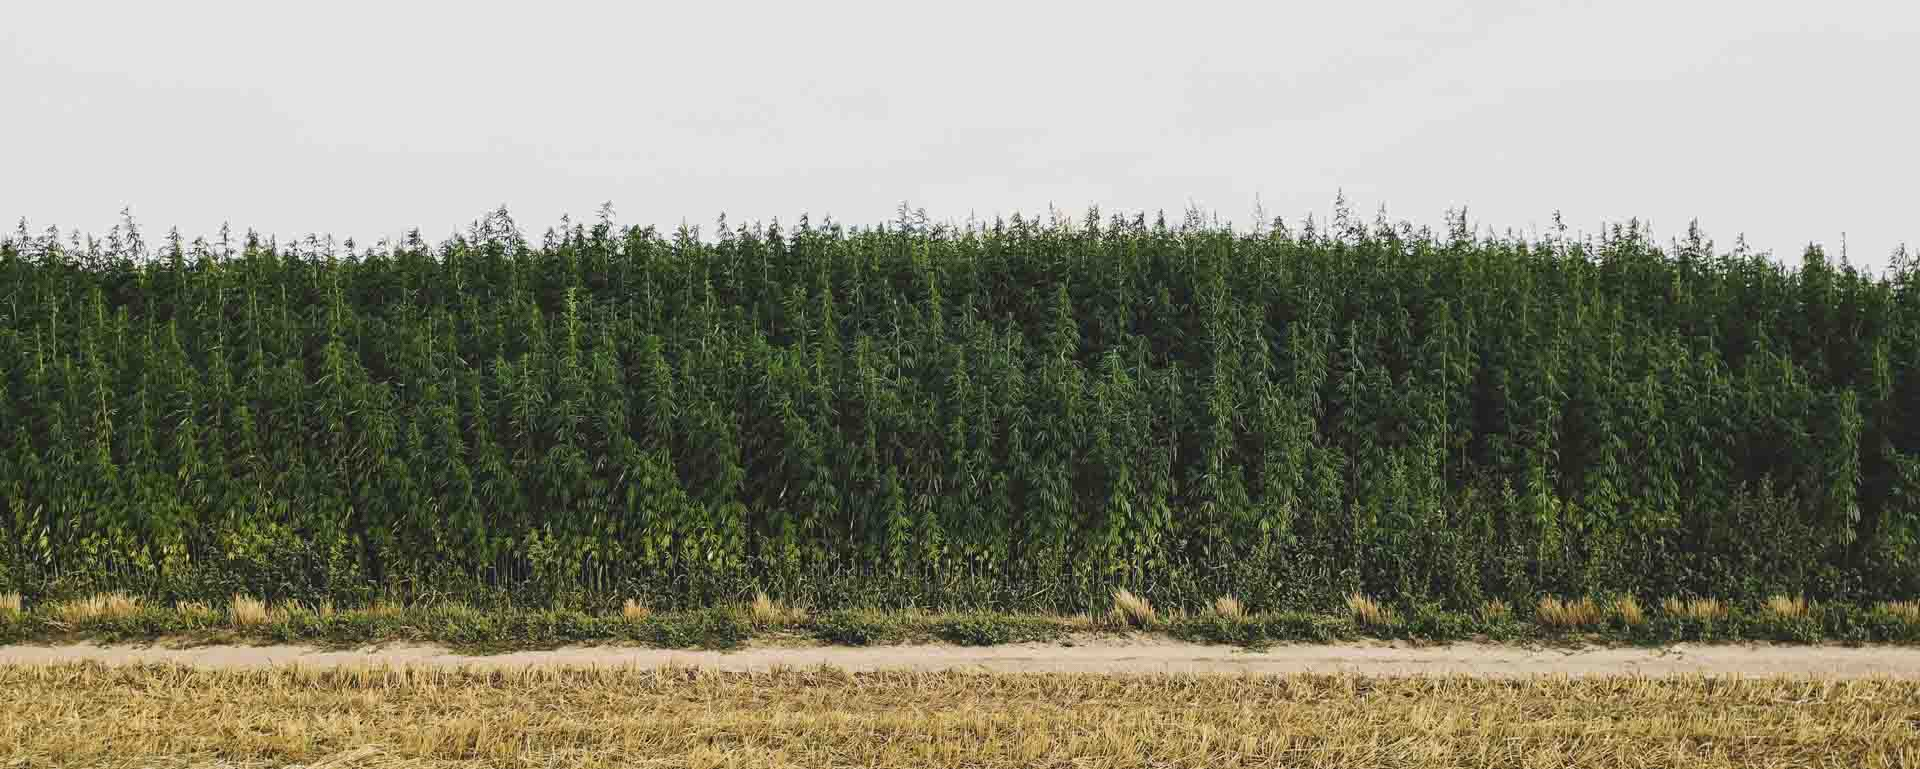 Is growing hemp for CBD legal in Italy?